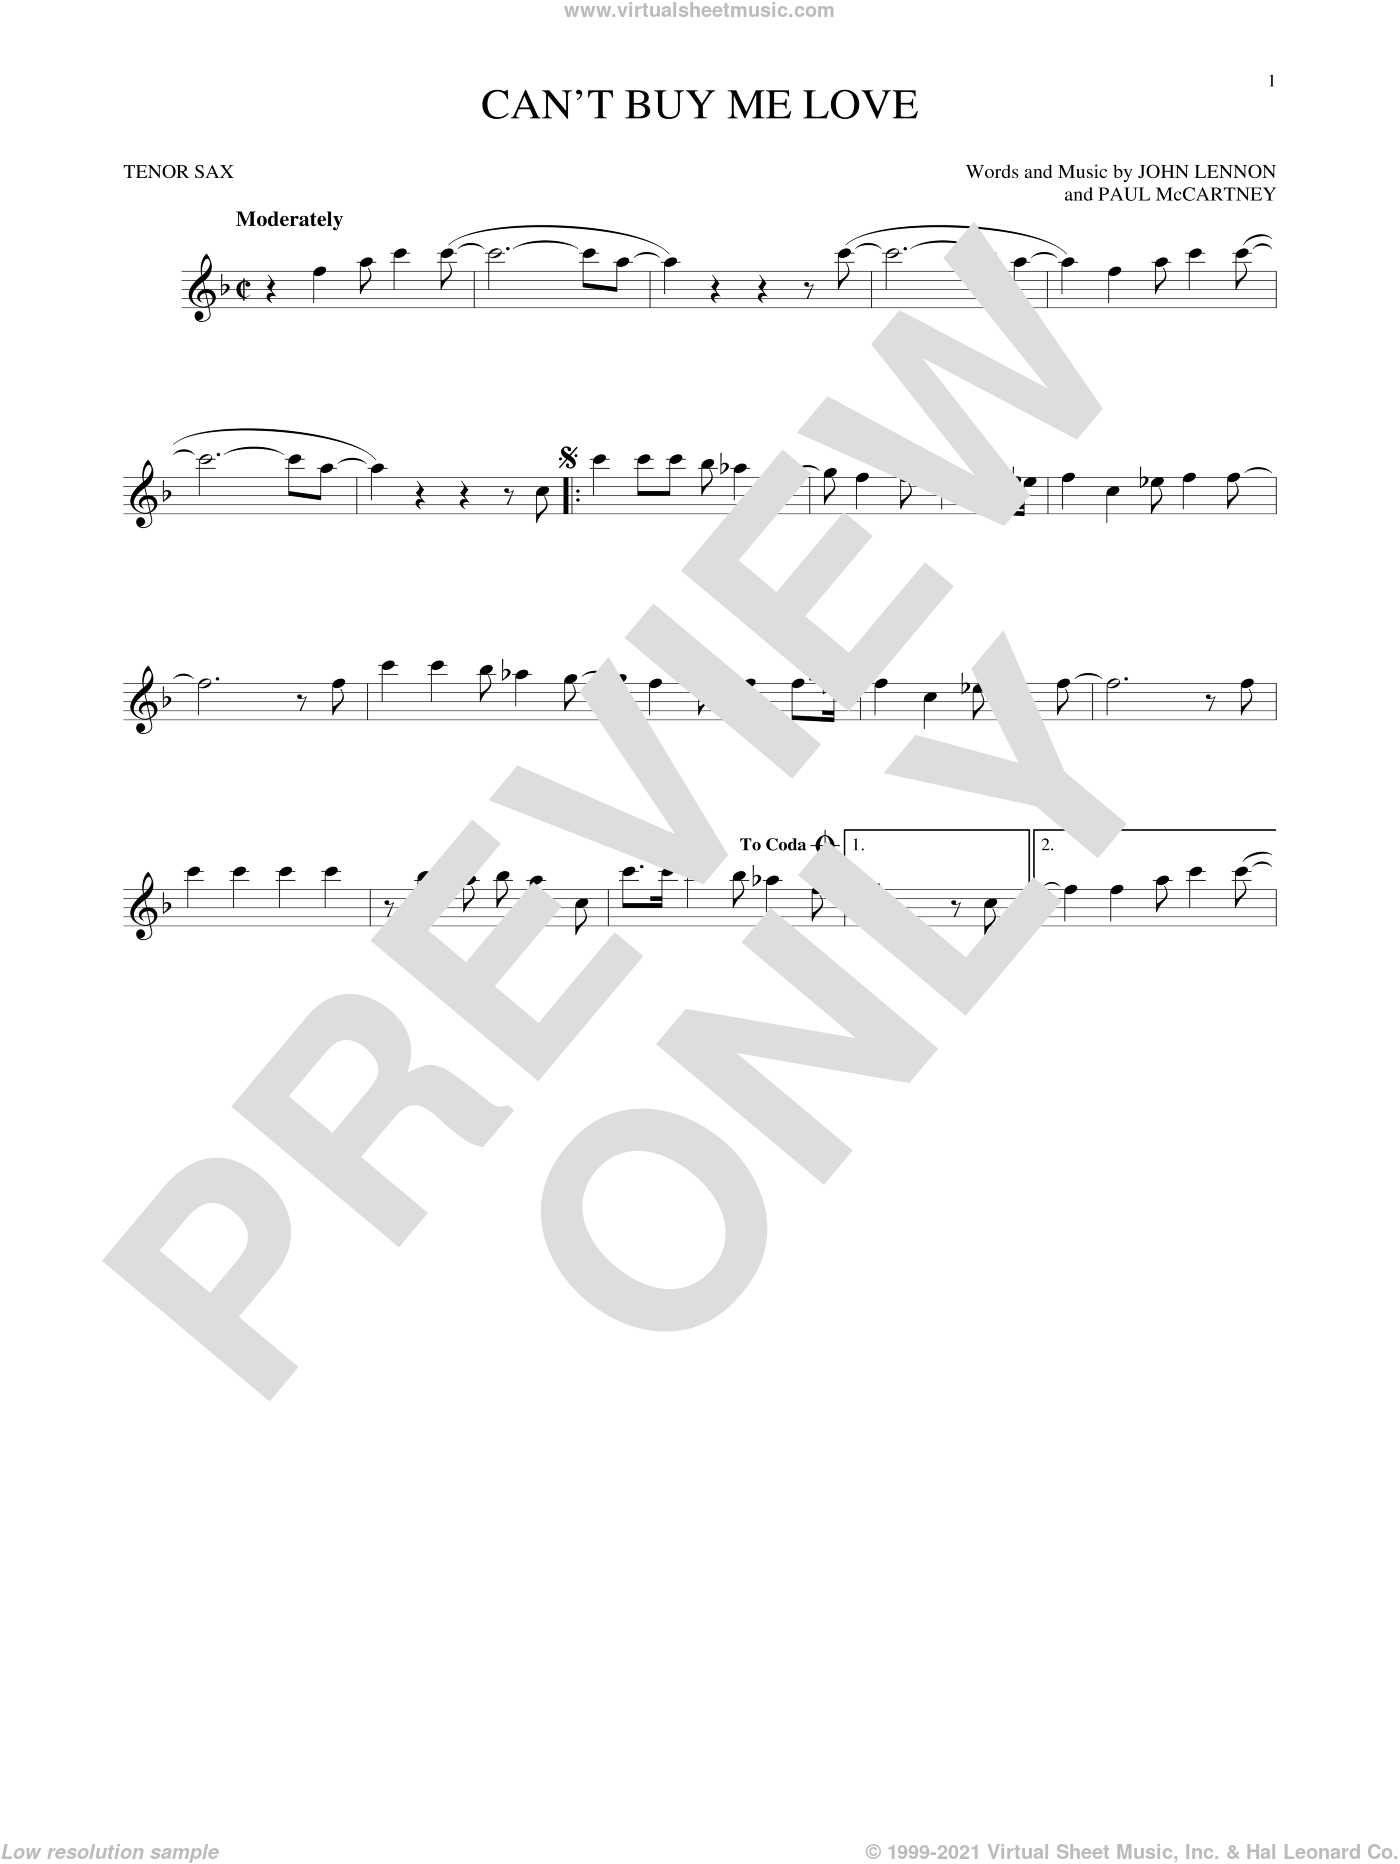 Can't Buy Me Love sheet music for tenor saxophone solo by Paul McCartney, The Beatles and John Lennon. Score Image Preview.